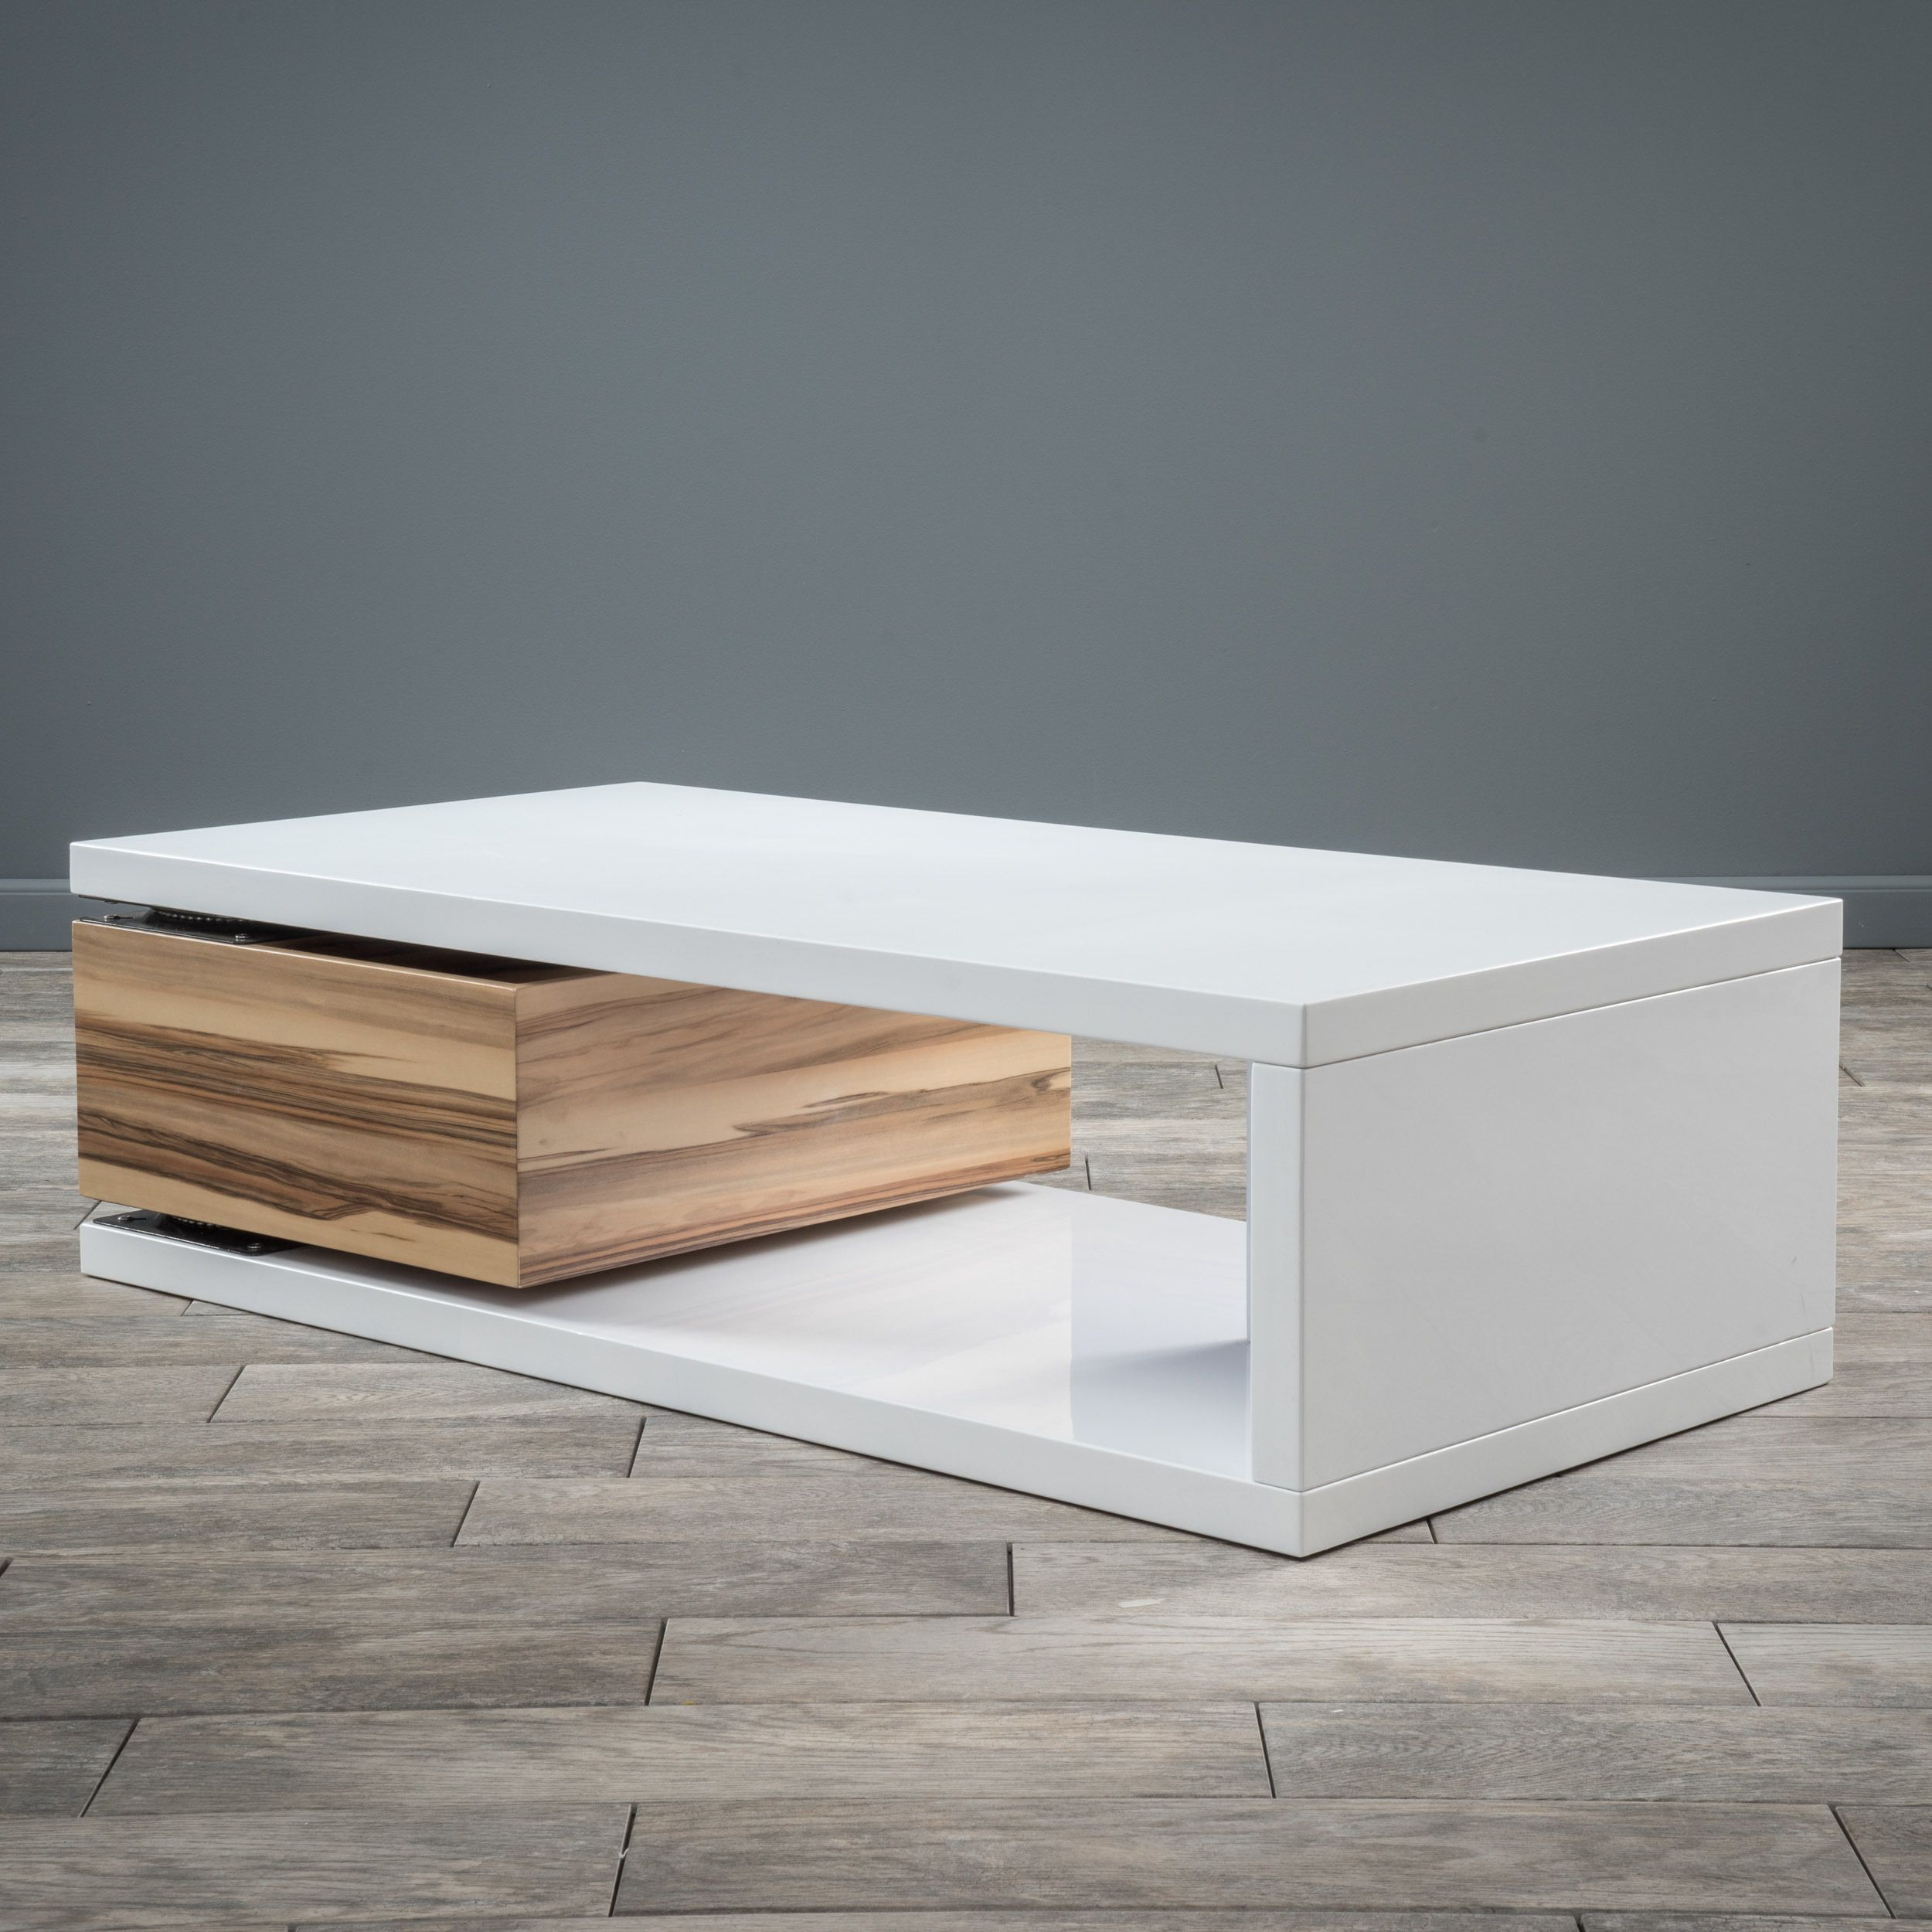 Rectangular mod rotatable coffee table by christopher knight home rectangular mod rotatable coffee table by christopher knight home by christopher knight home geotapseo Image collections